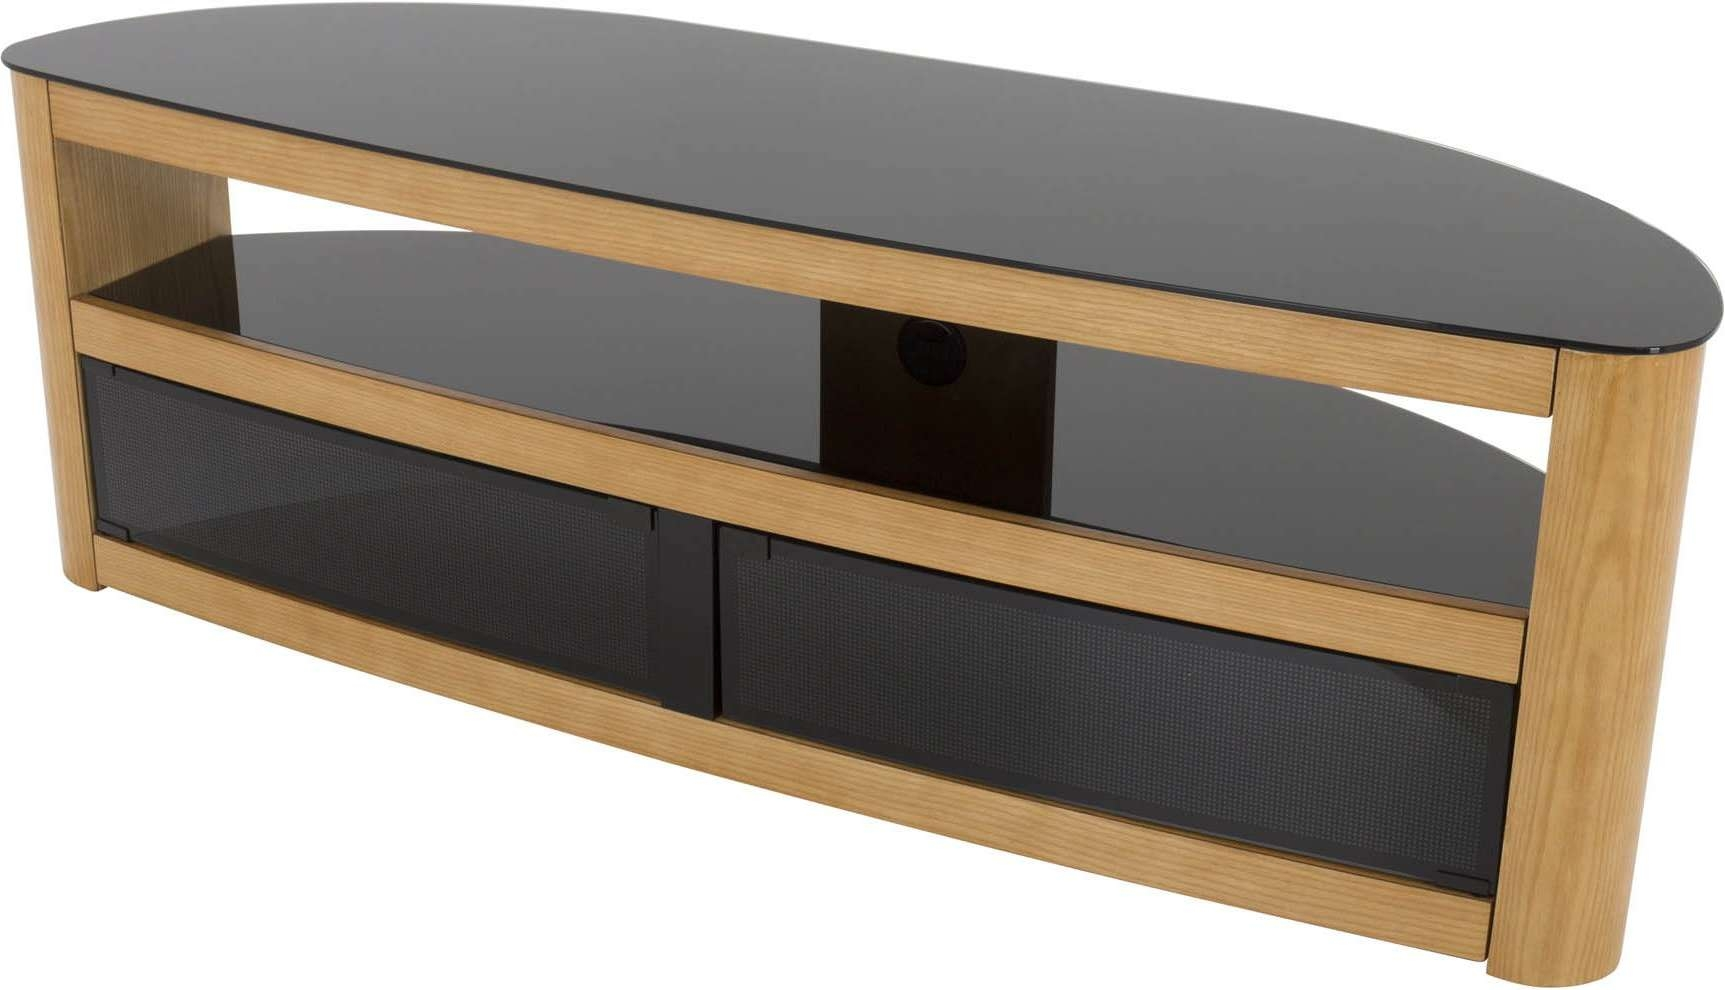 Avf Fs1500buro Tv Stands Pertaining To Tv Stands In Oak (View 14 of 15)